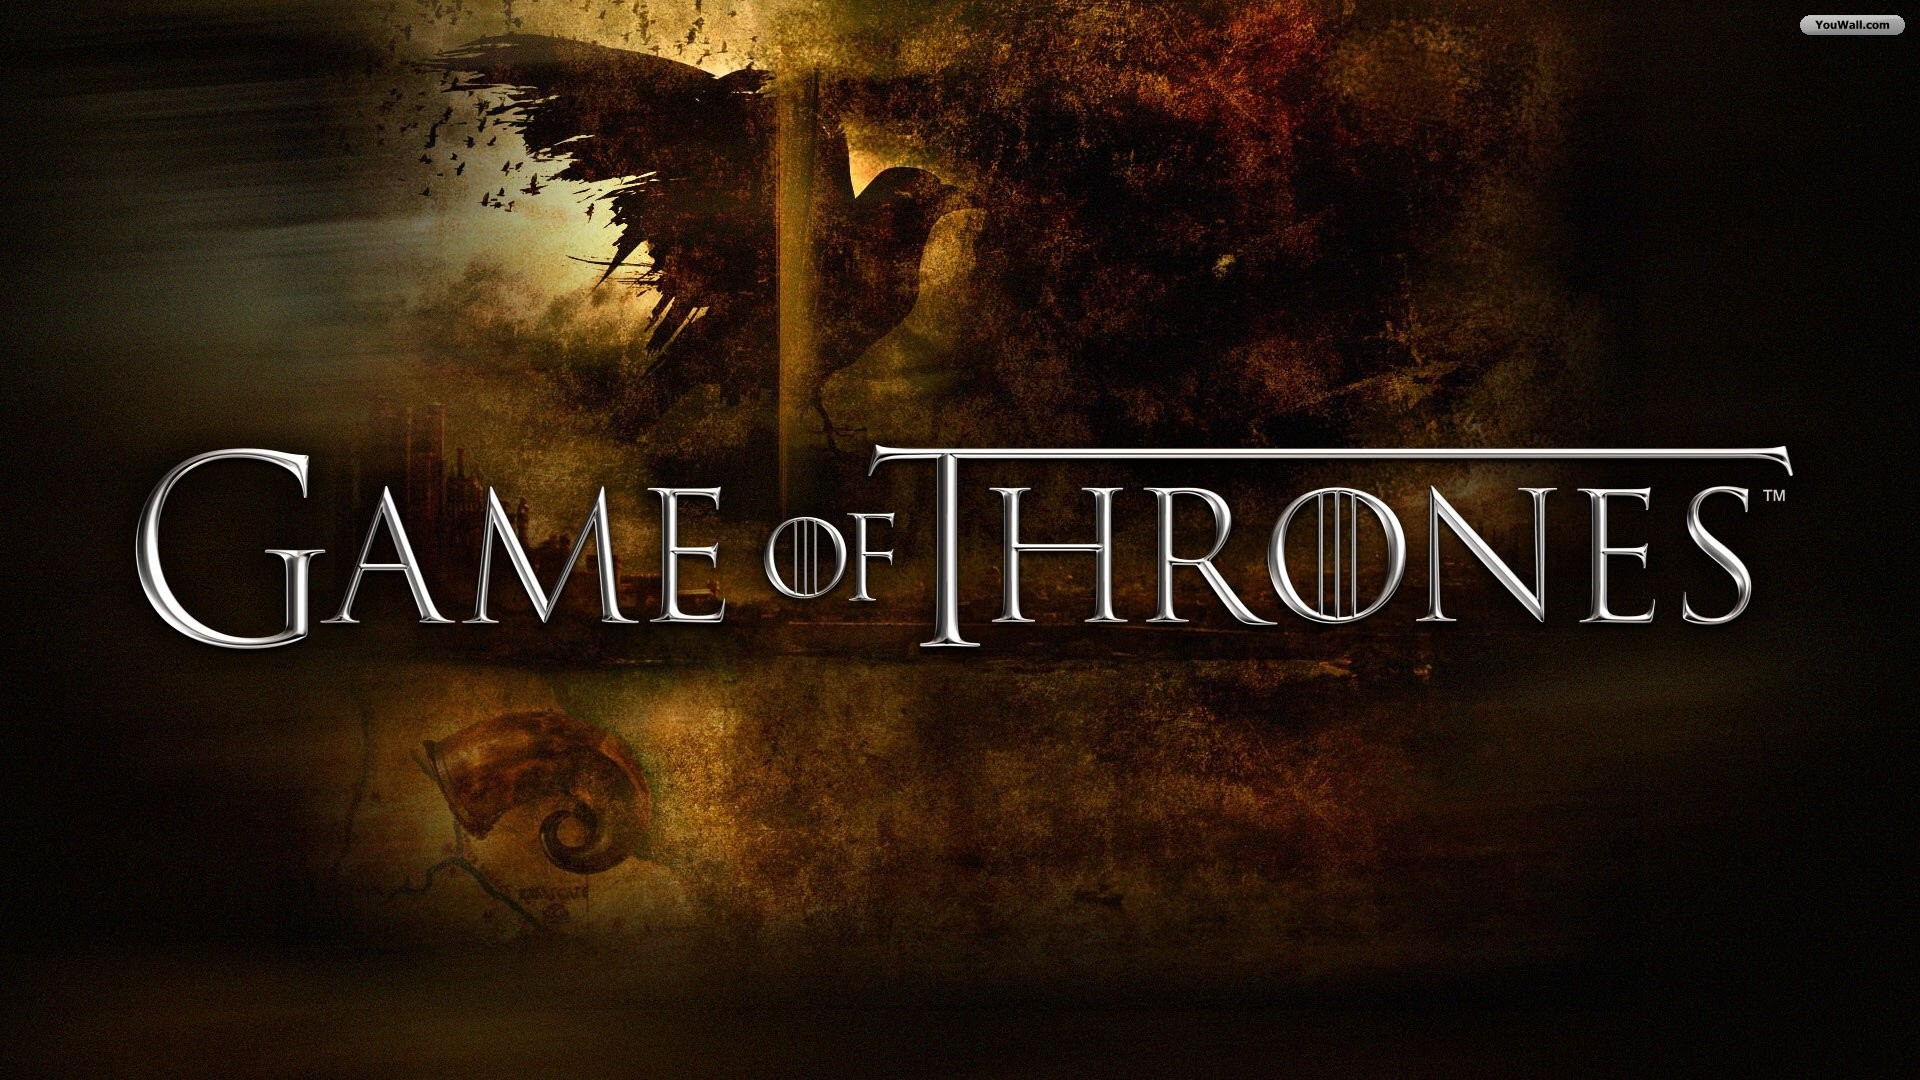 1920x1080 Game of Thrones Wallpaper